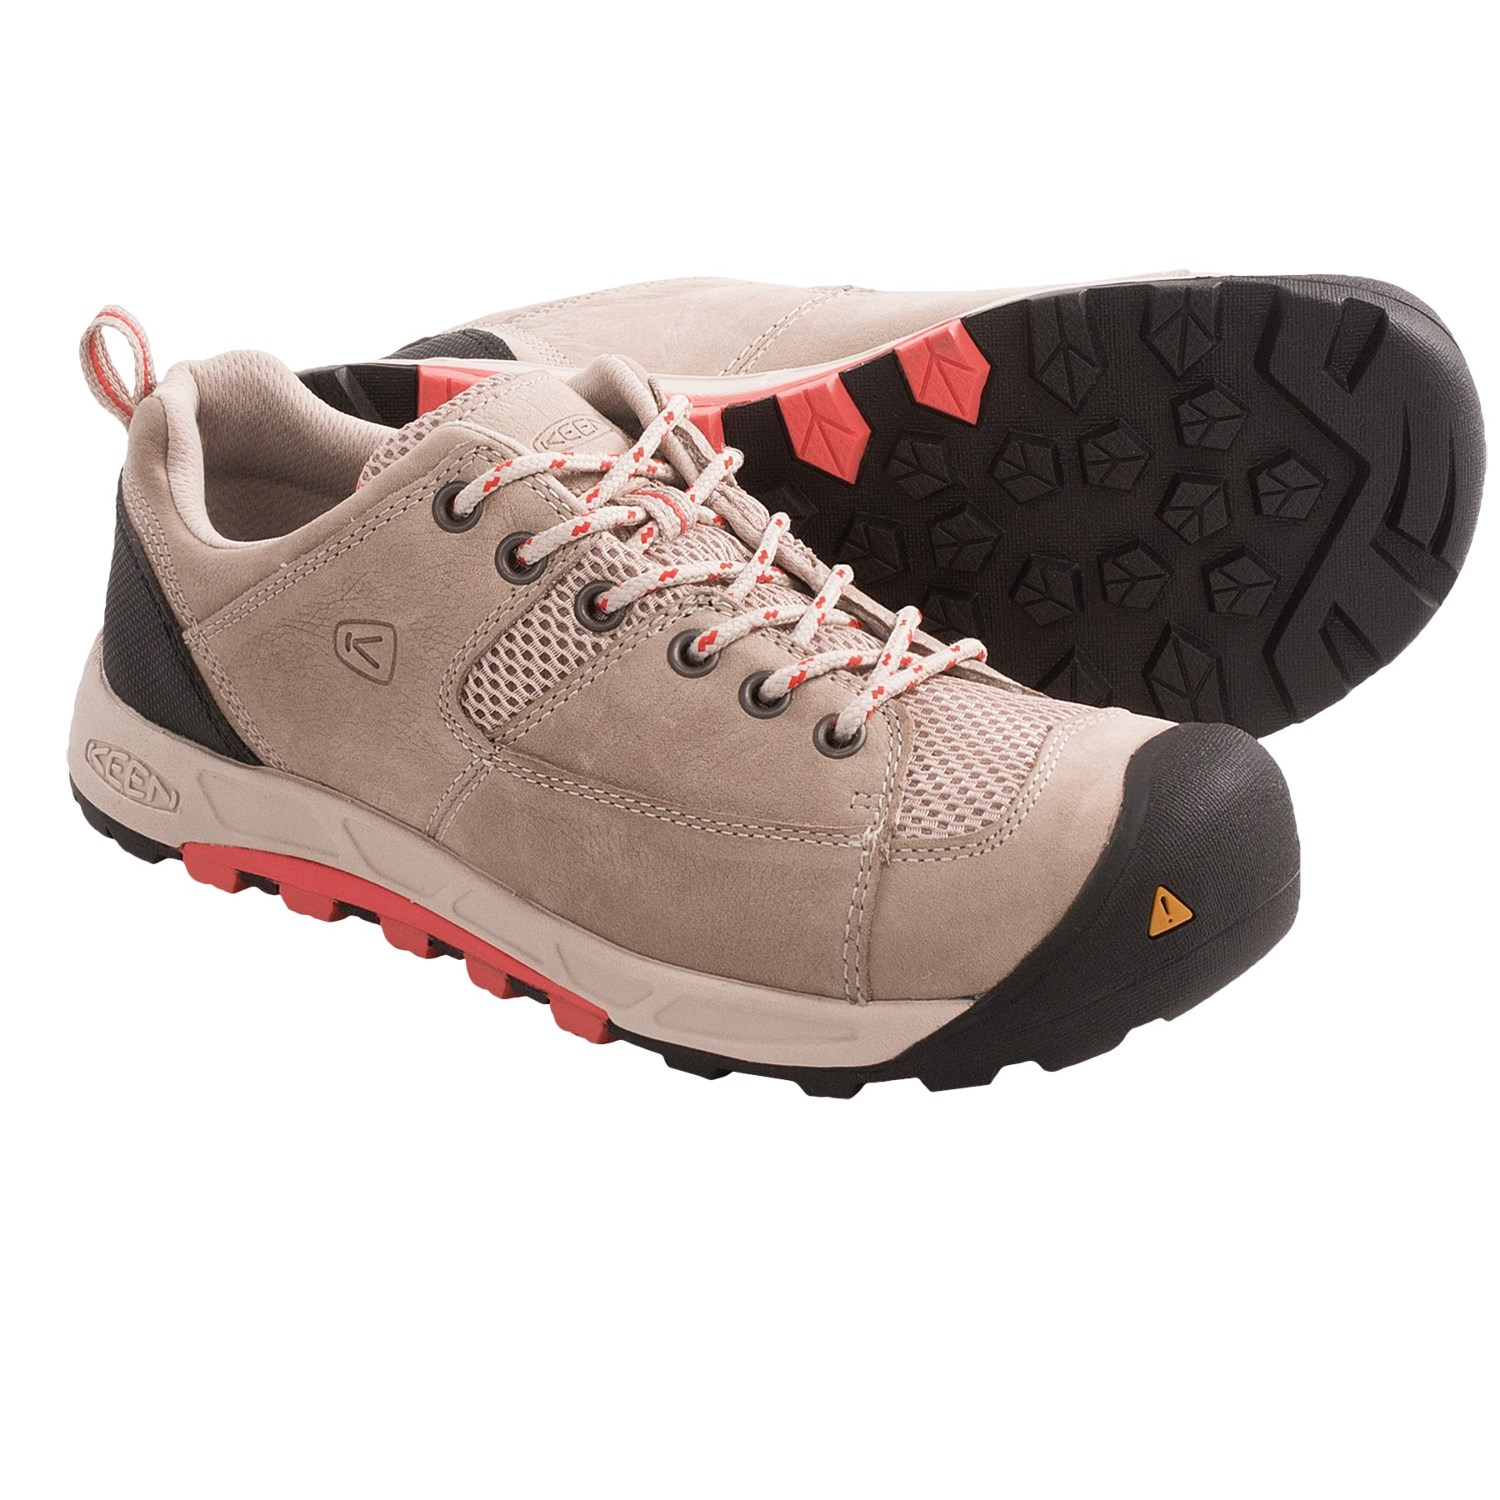 For Women Shoes Stores Keen Shoes For Women